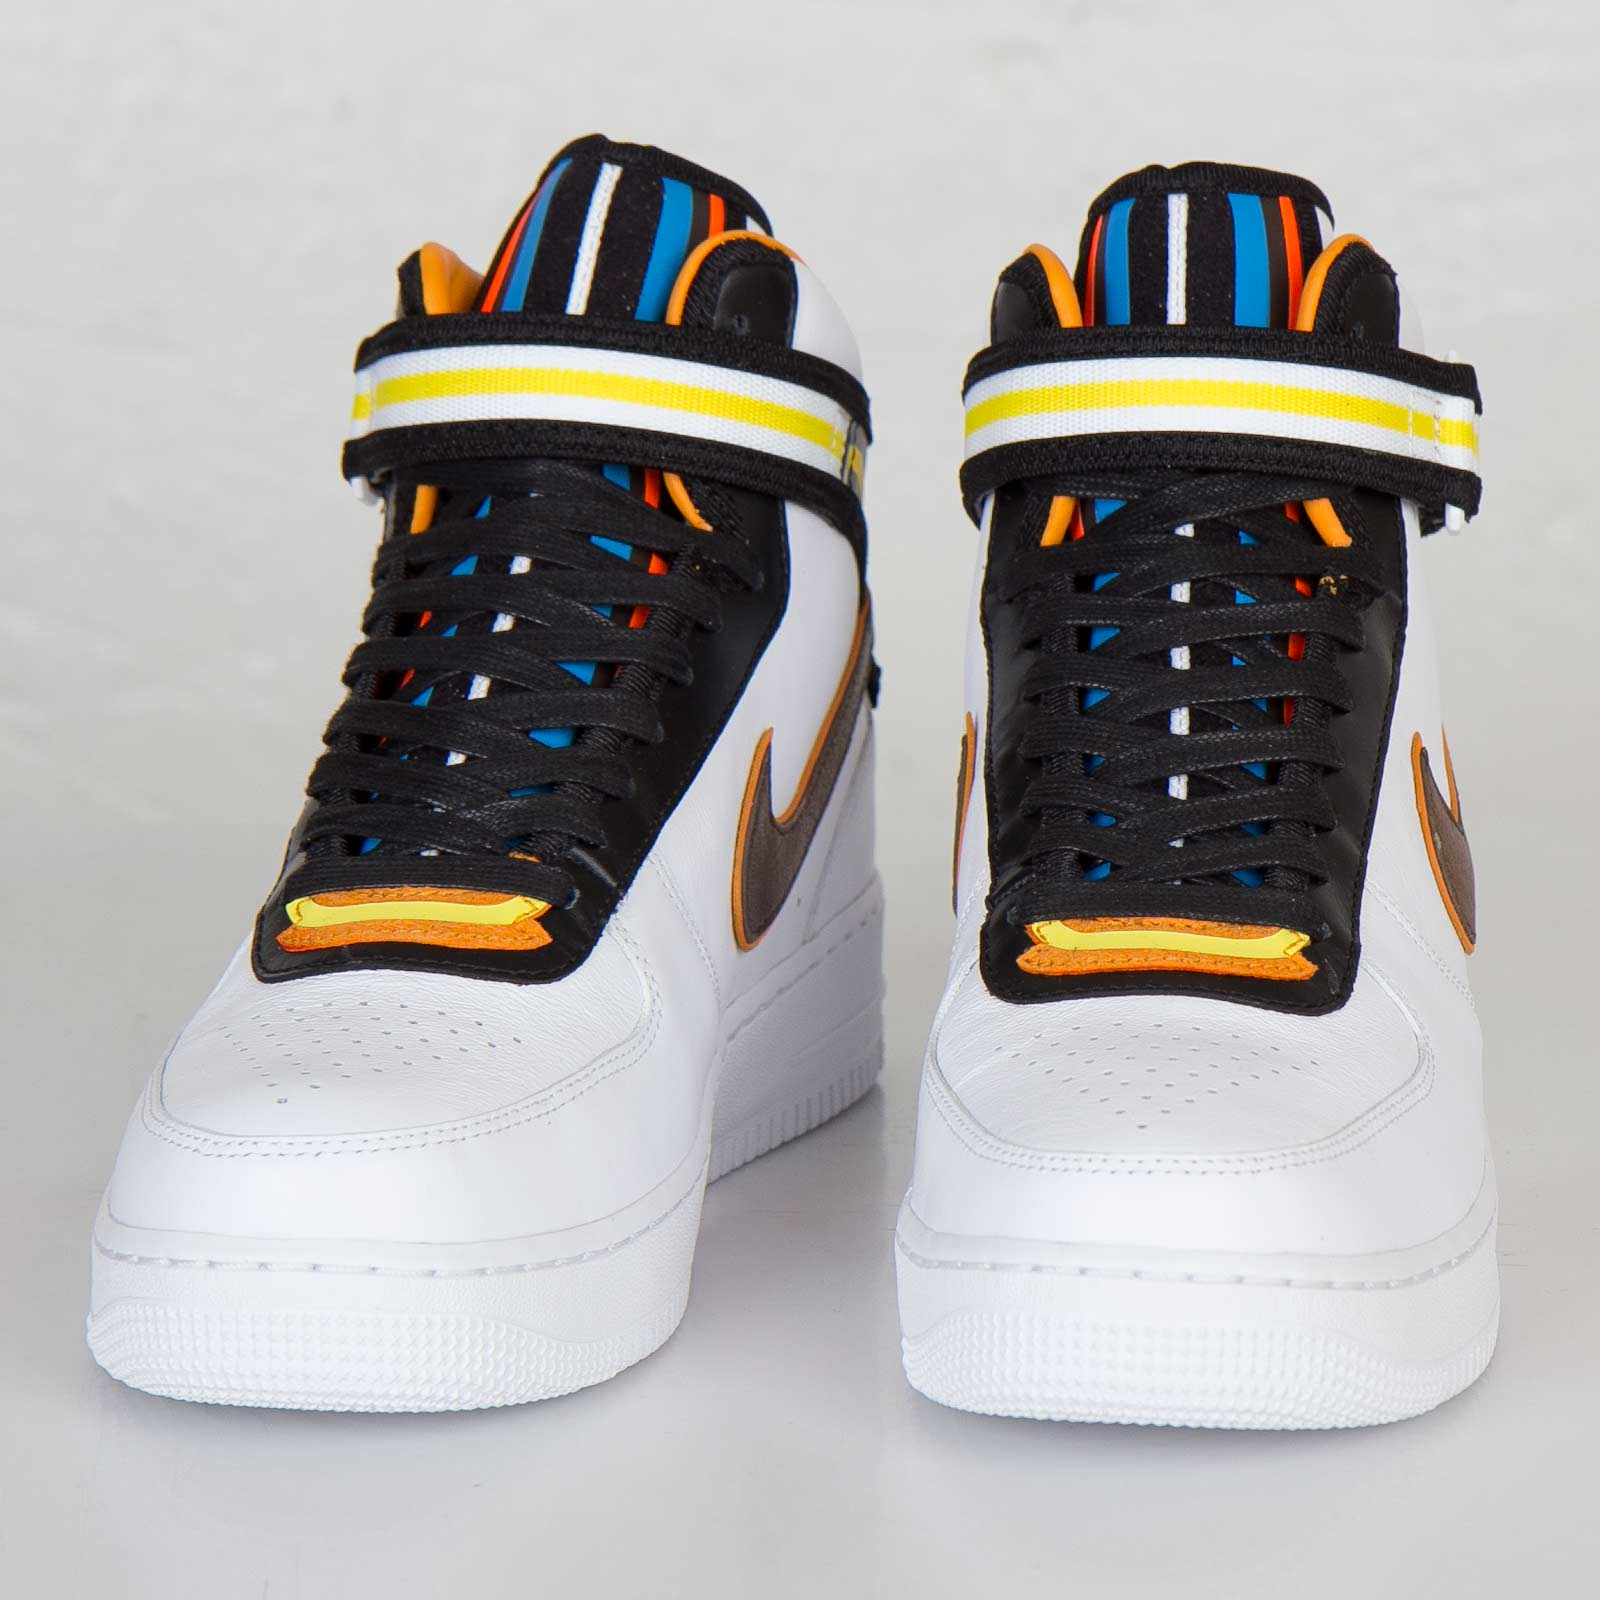 factory authentic cbbe1 7154c Nike Air Force 1 Mid SP   Tisci - 677130-120 - Sneakersnstuff   sneakers    streetwear online since 1999